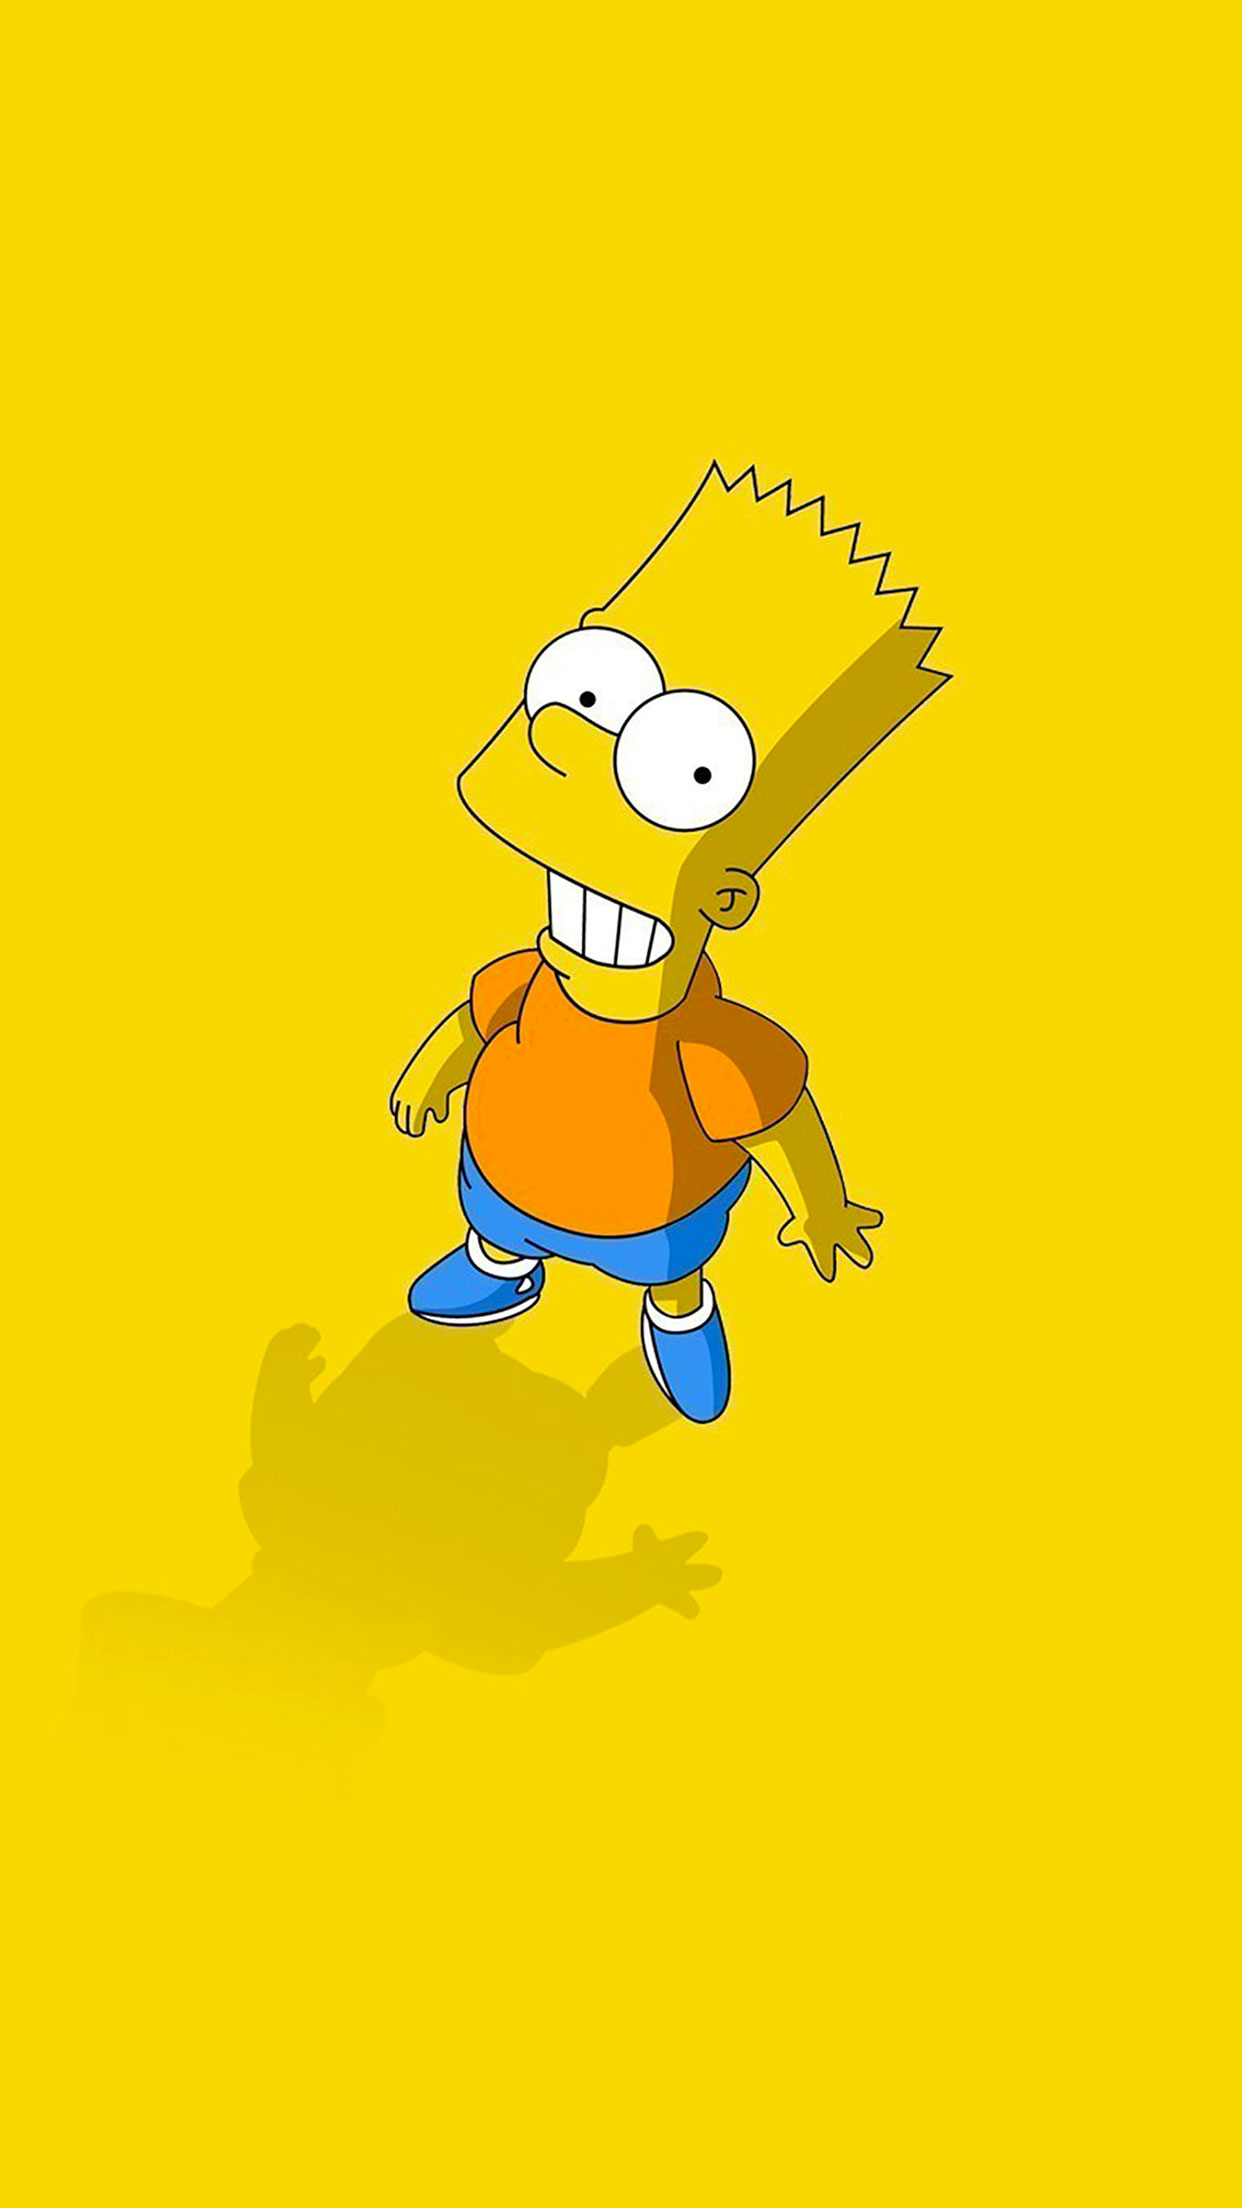 Simpsons Bart Wallpaper for iPhone X, 8, 7, 6 , Free